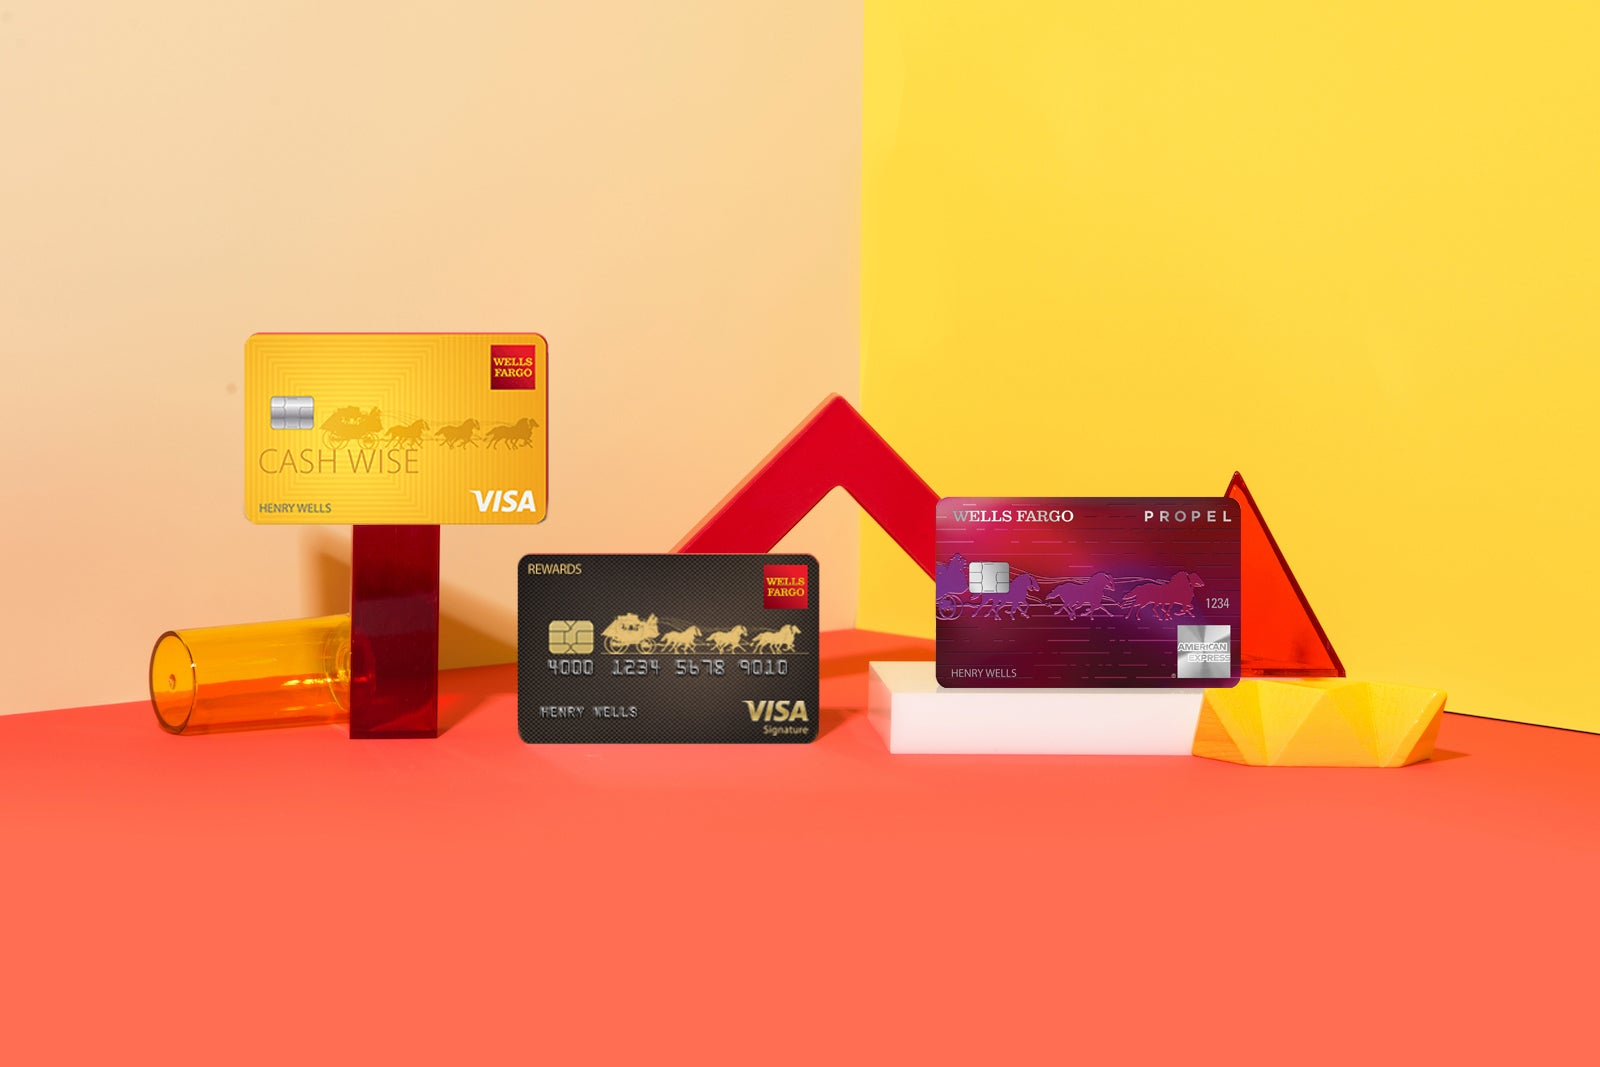 Best Wells Fargo credit cards of 6 - The Points Guy